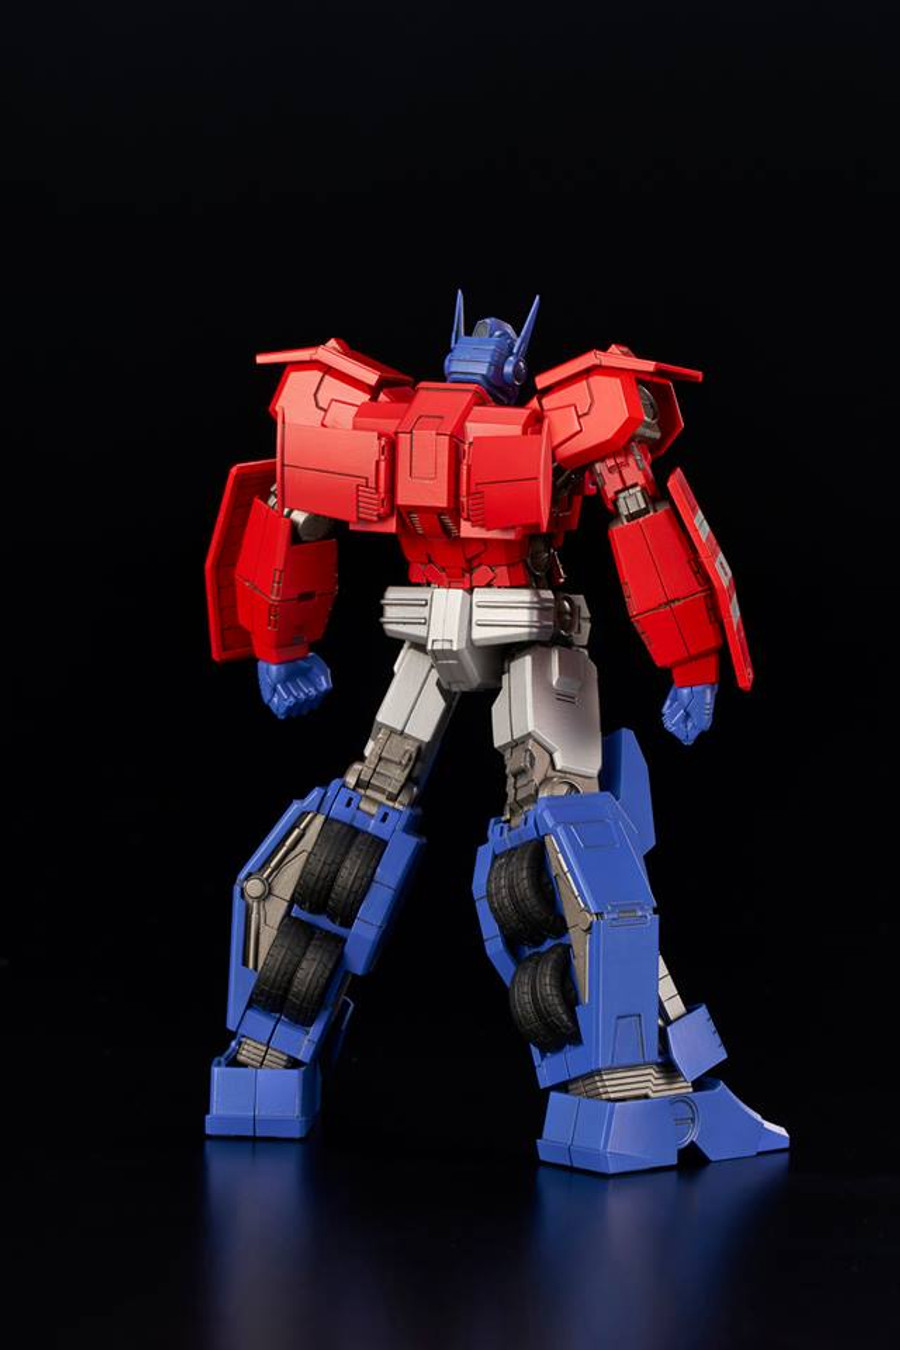 Flame Toys - Furai Model 03: Optimus Prime IDW Version